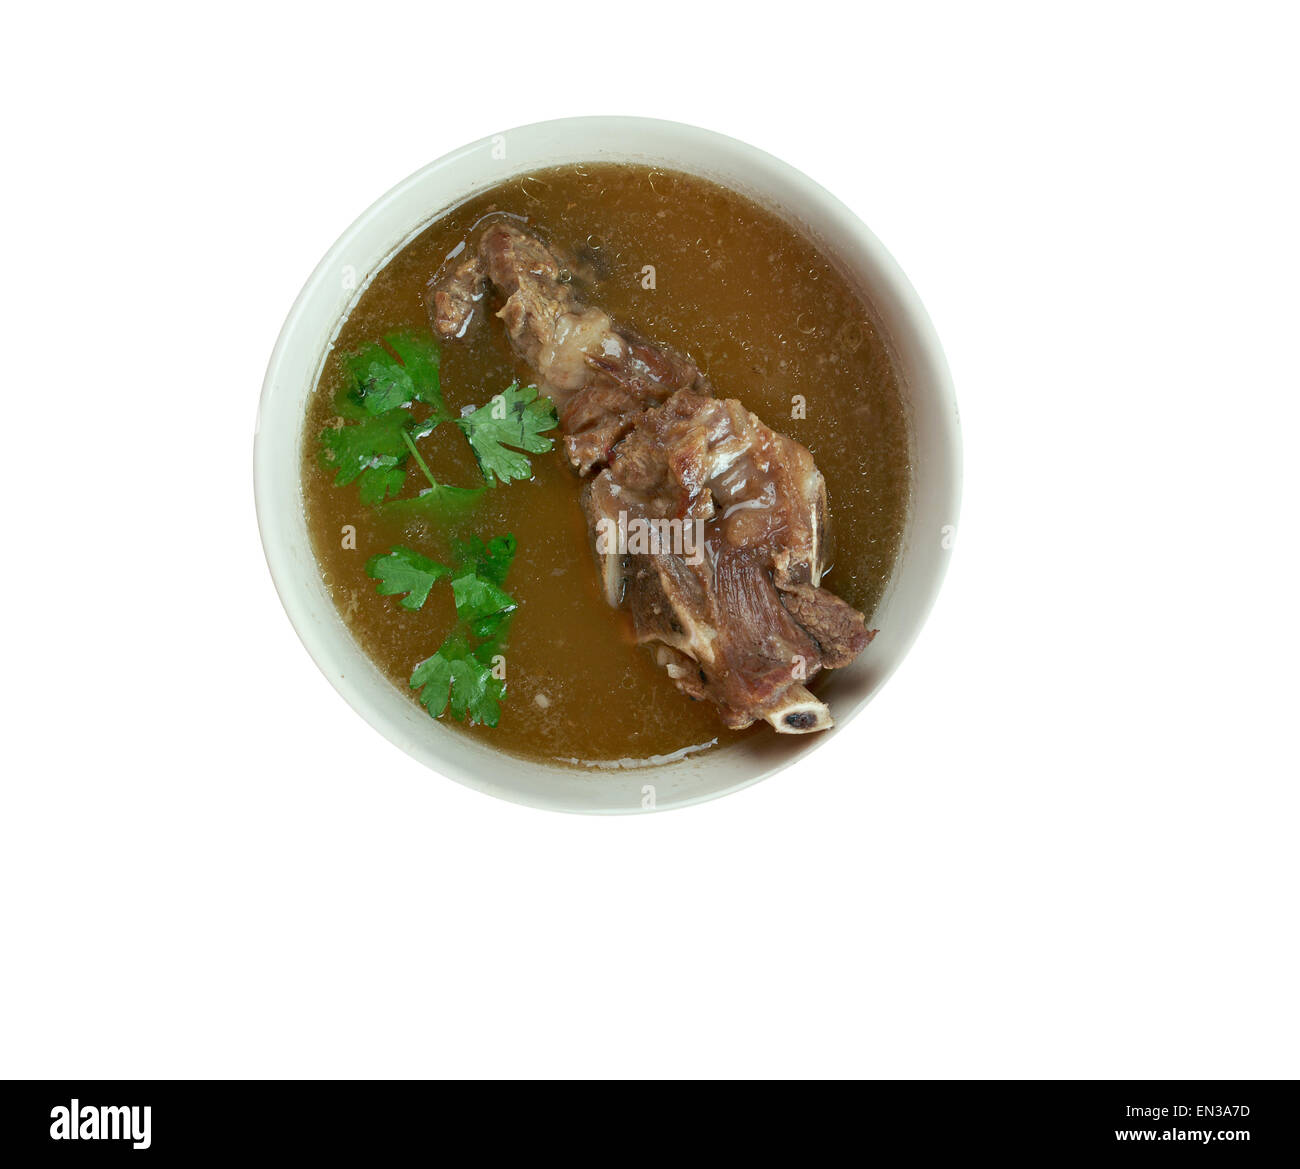 Khash - dish of boiled cow's feet. traditional dish in Afghanistan, Armenia, Azerbaijan, Bosnia and Hercegovina, - Stock Image